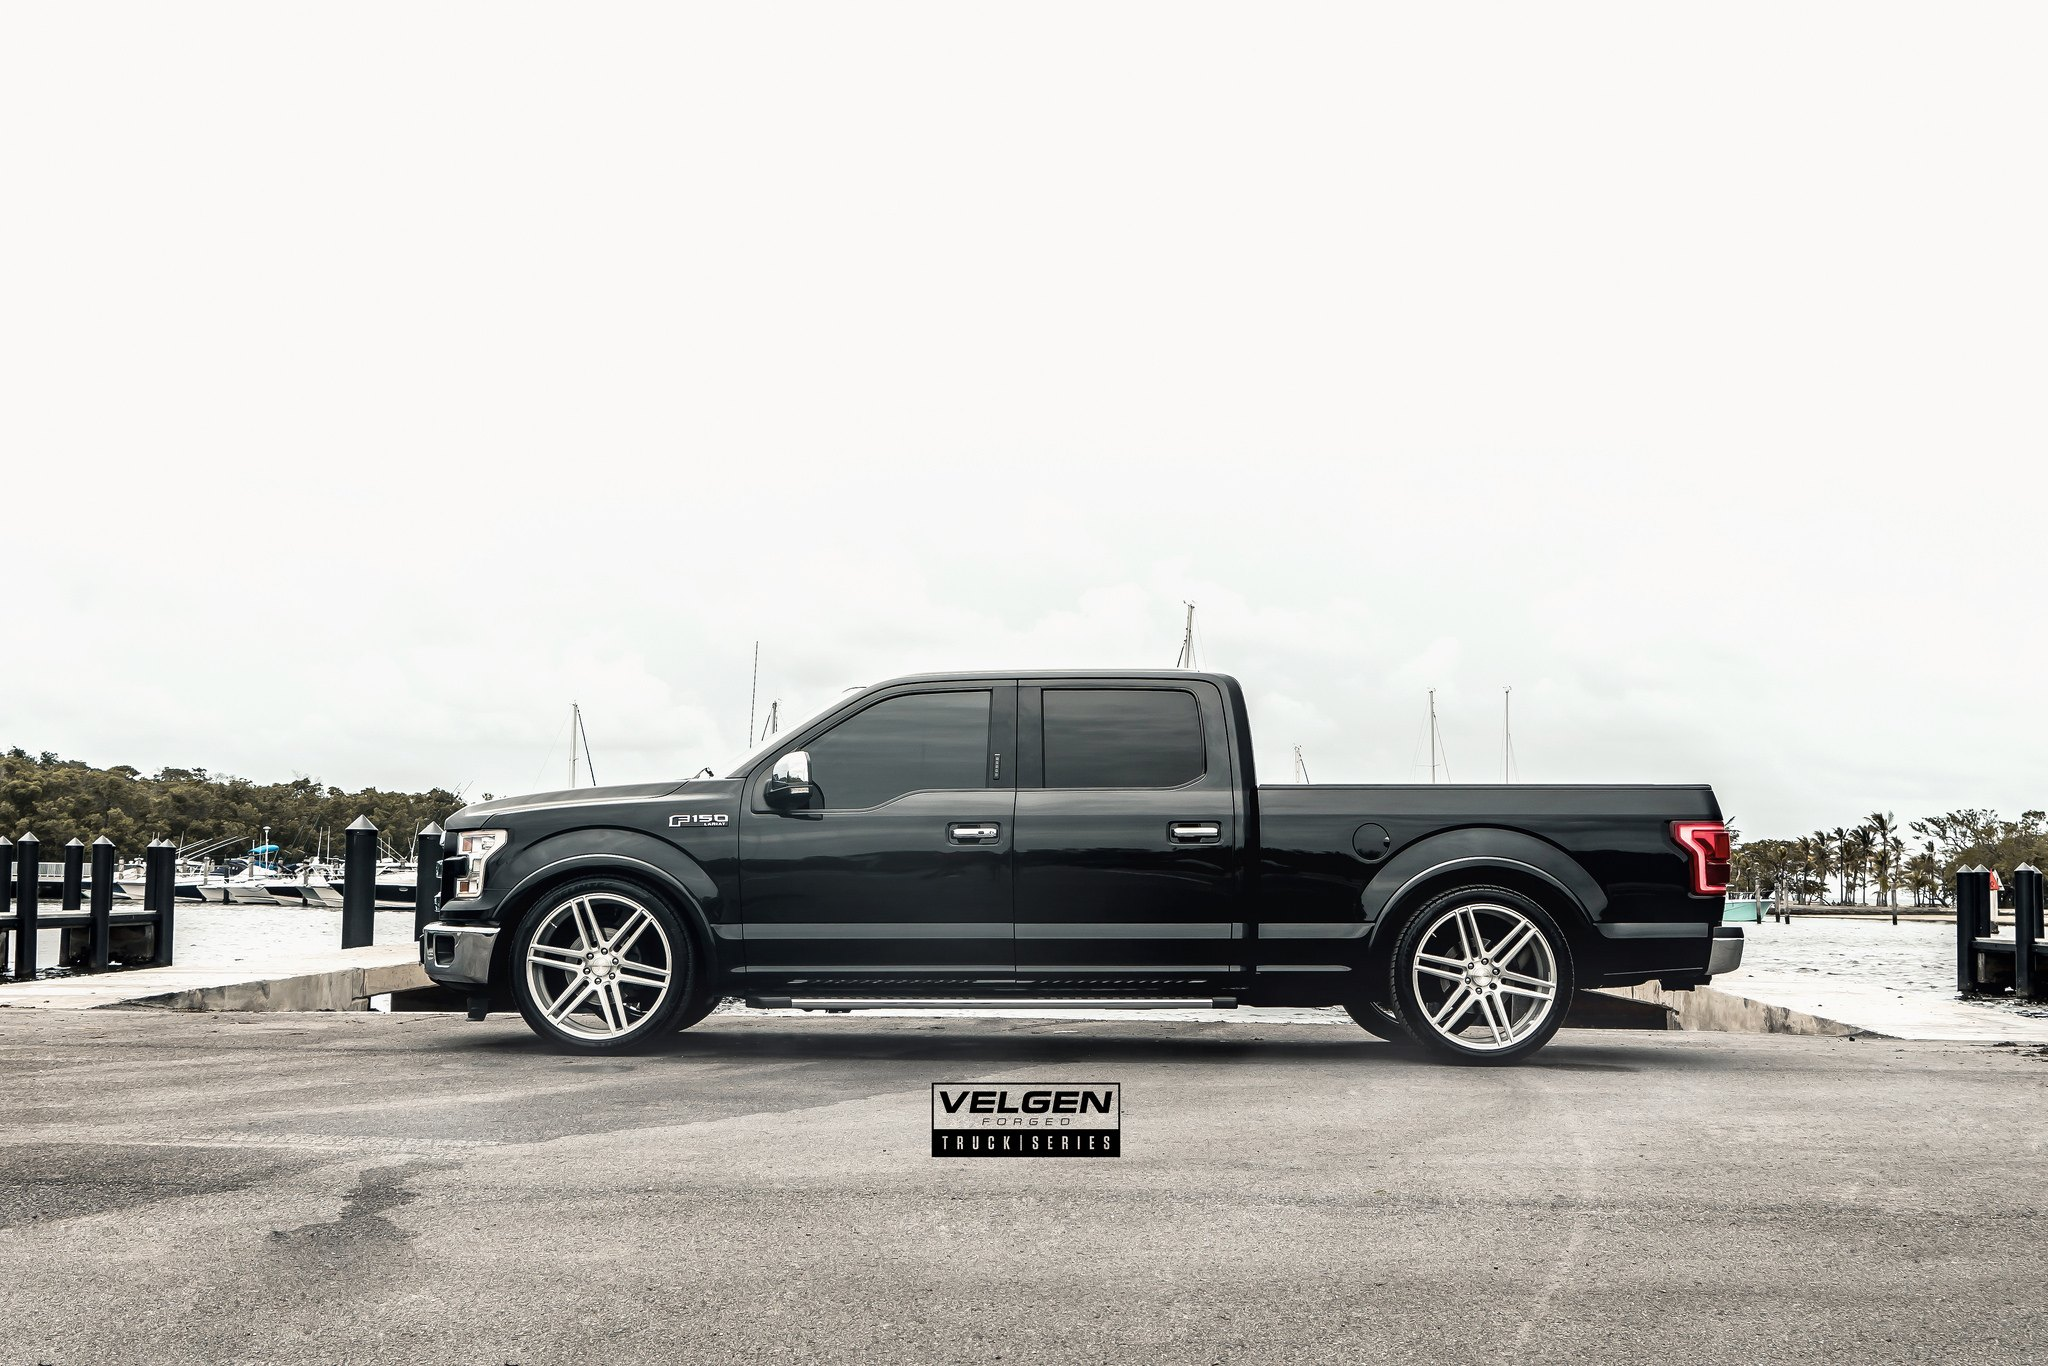 Silver Forged Velgen Rims on Black Ford F-150 Lariat - Photo by Velgen